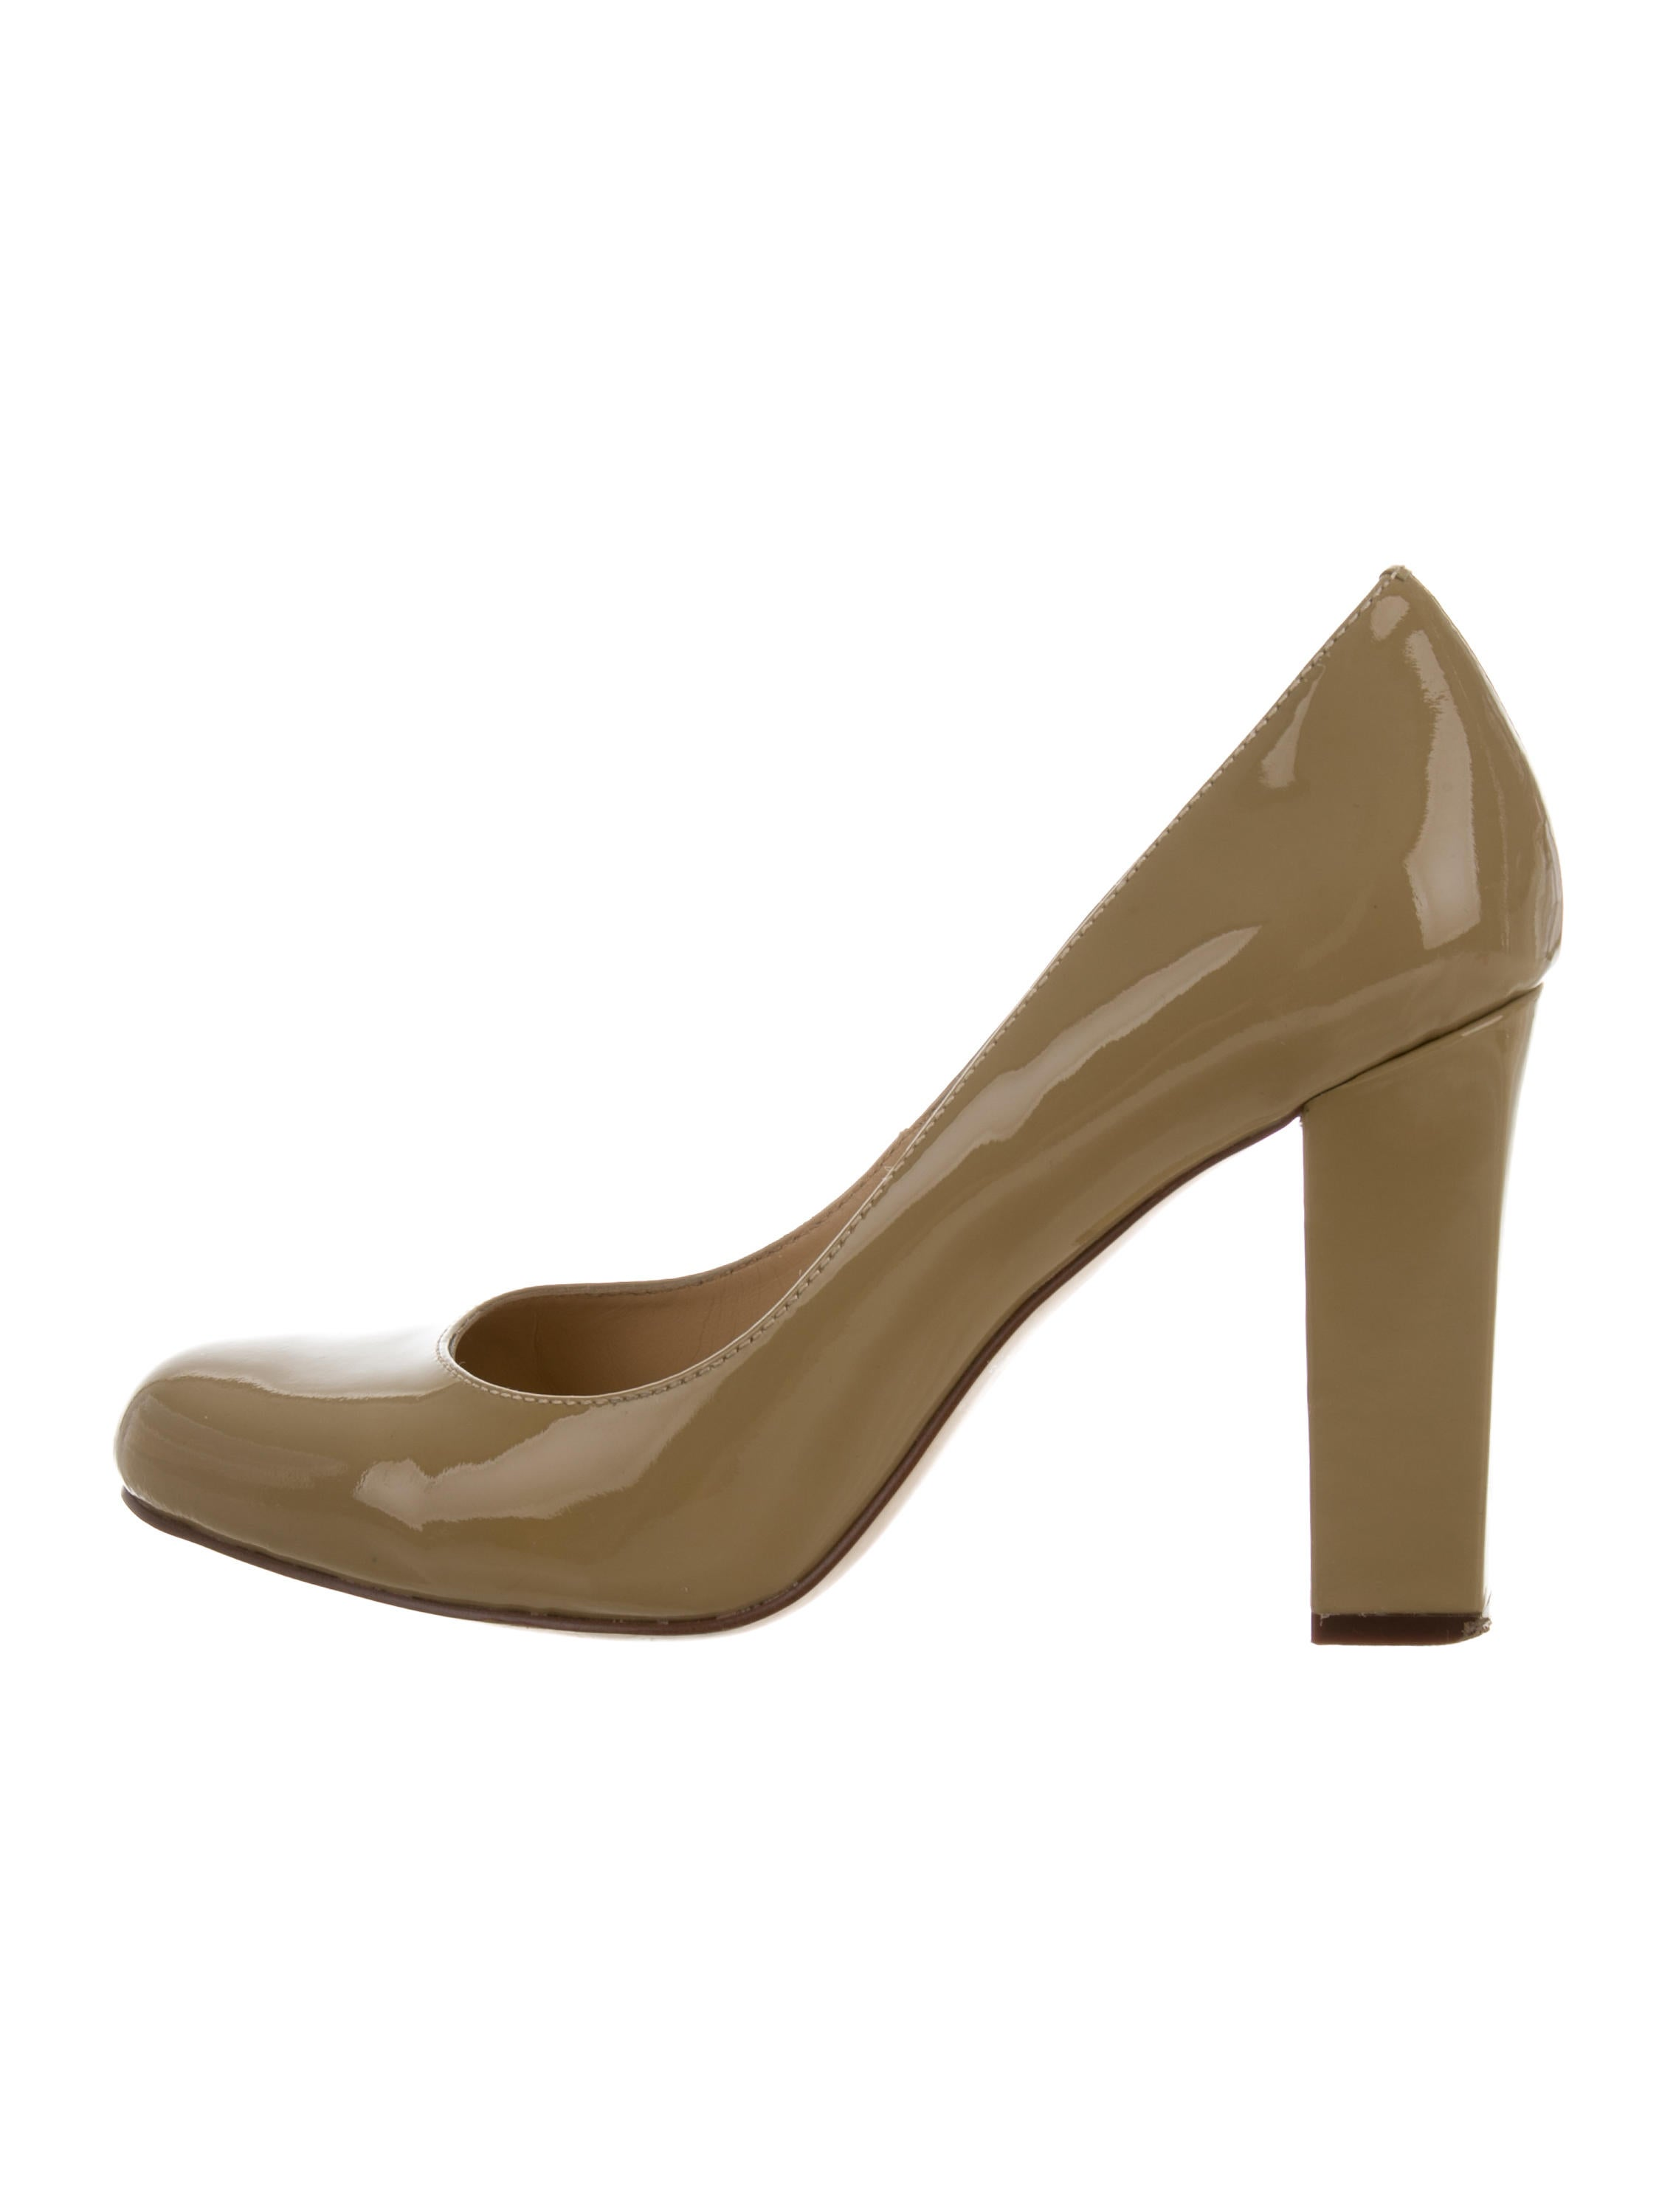 Kate Spade New York Patent Leather Round-Toe Pumps discount amazing price sale outlet NED5Nk5